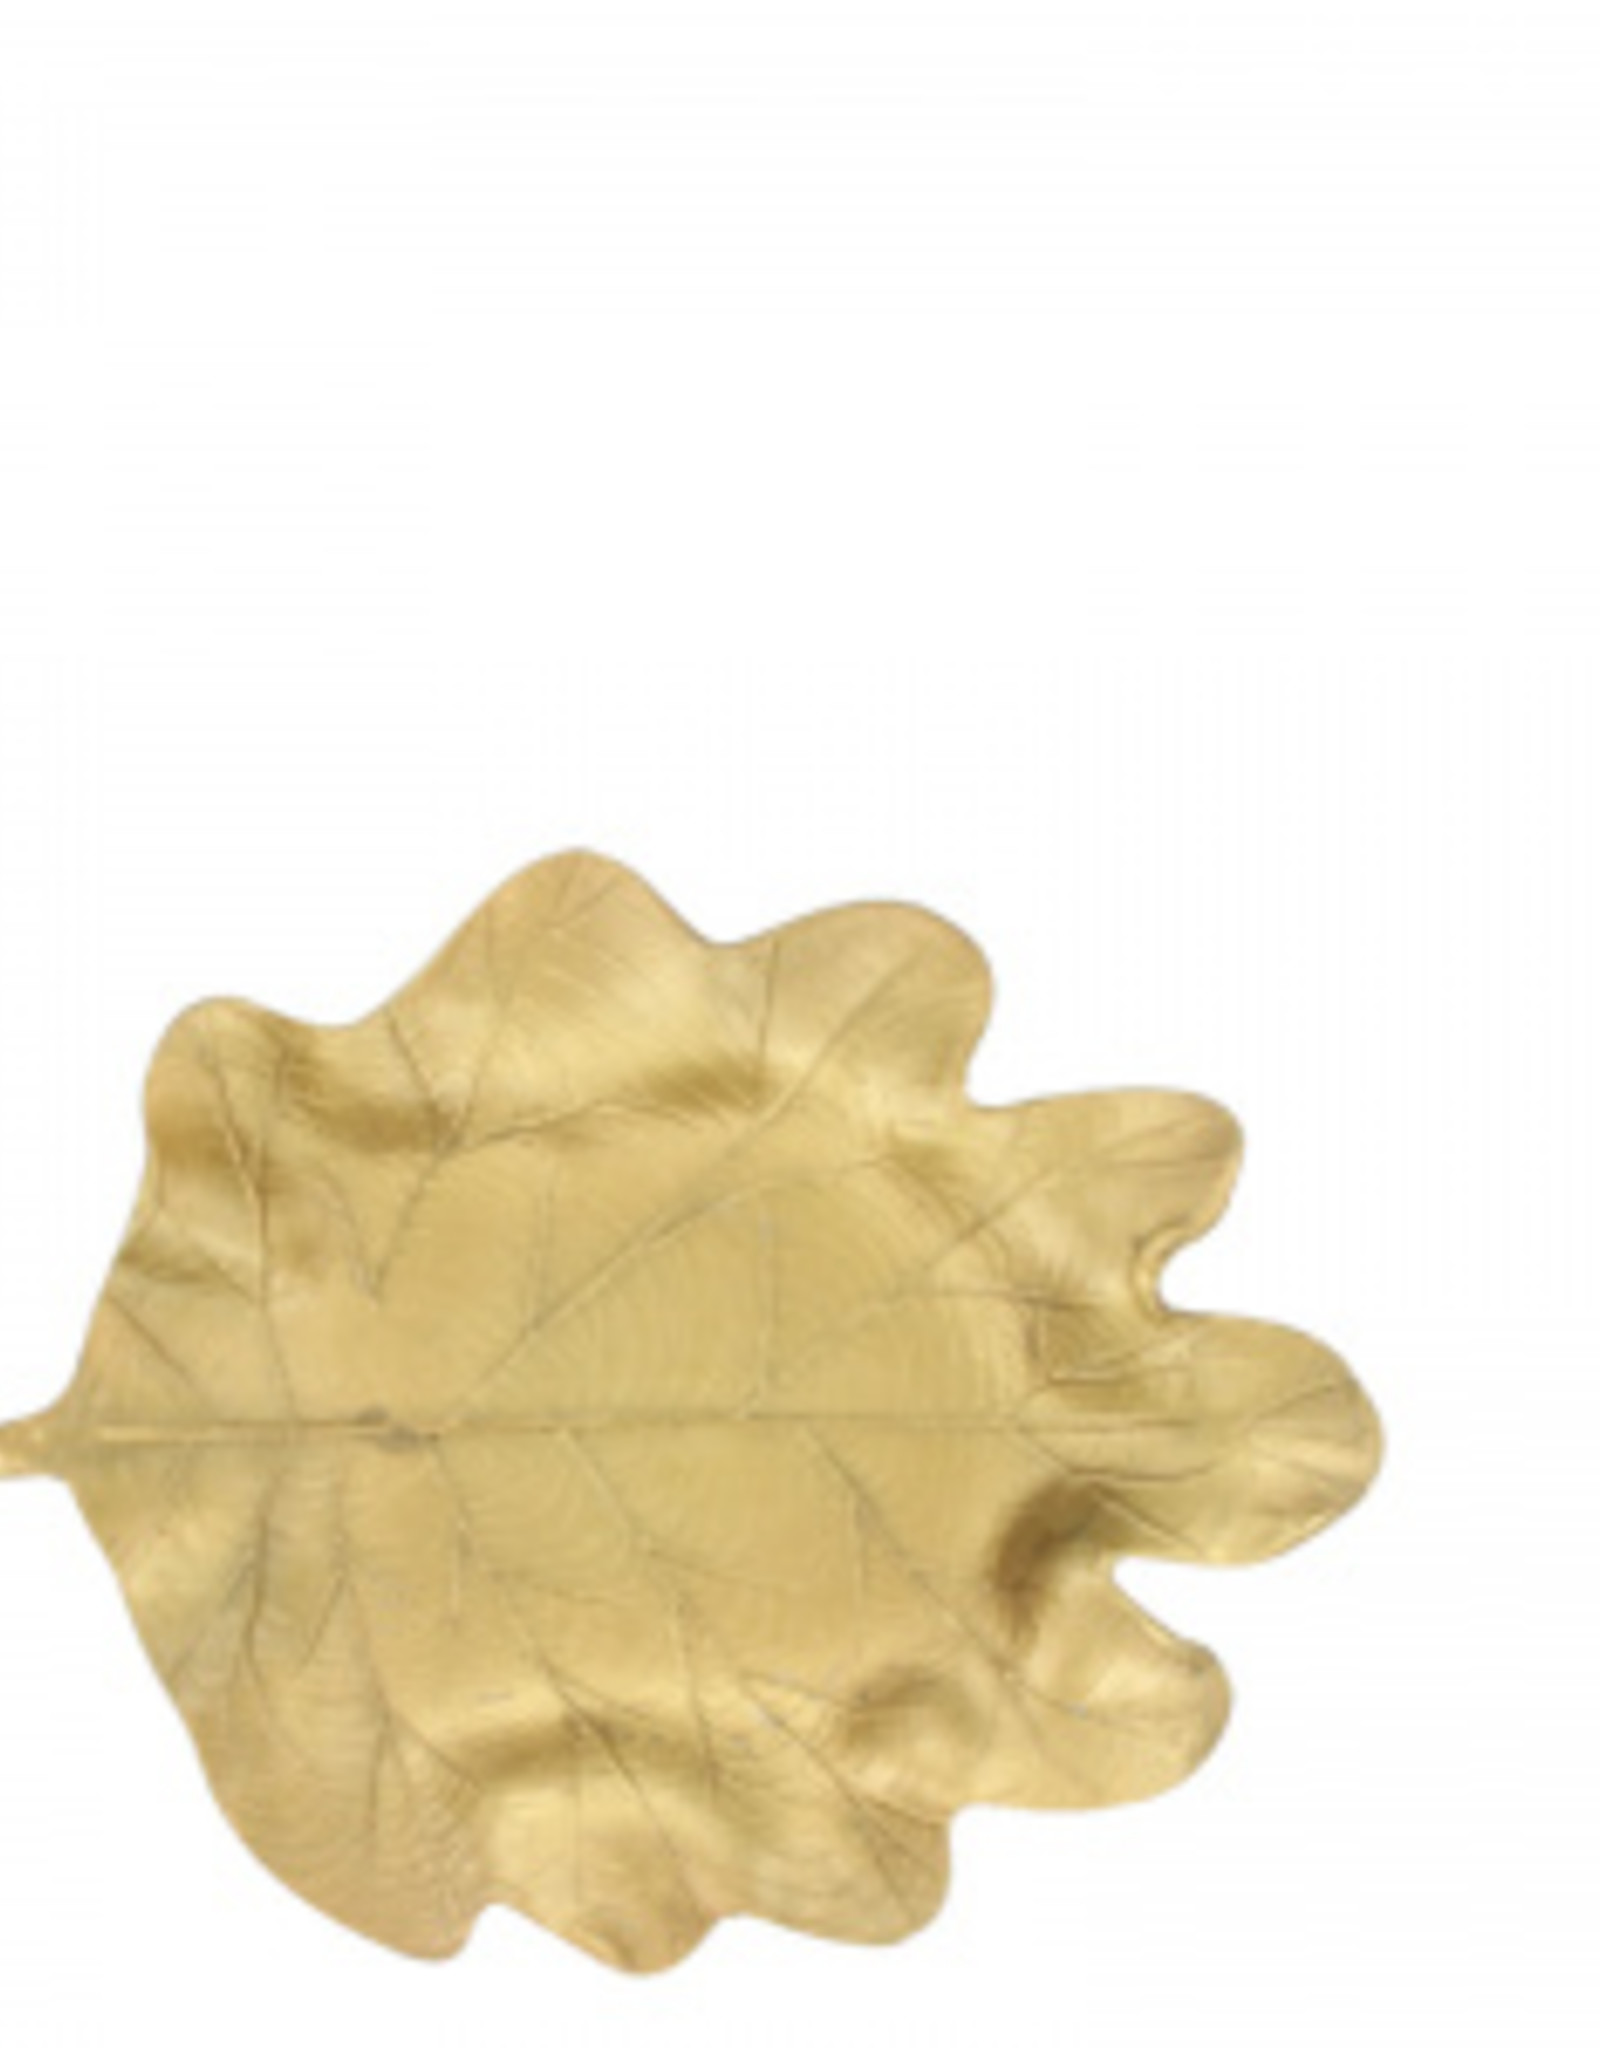 Lifestyle golden leaf tray S